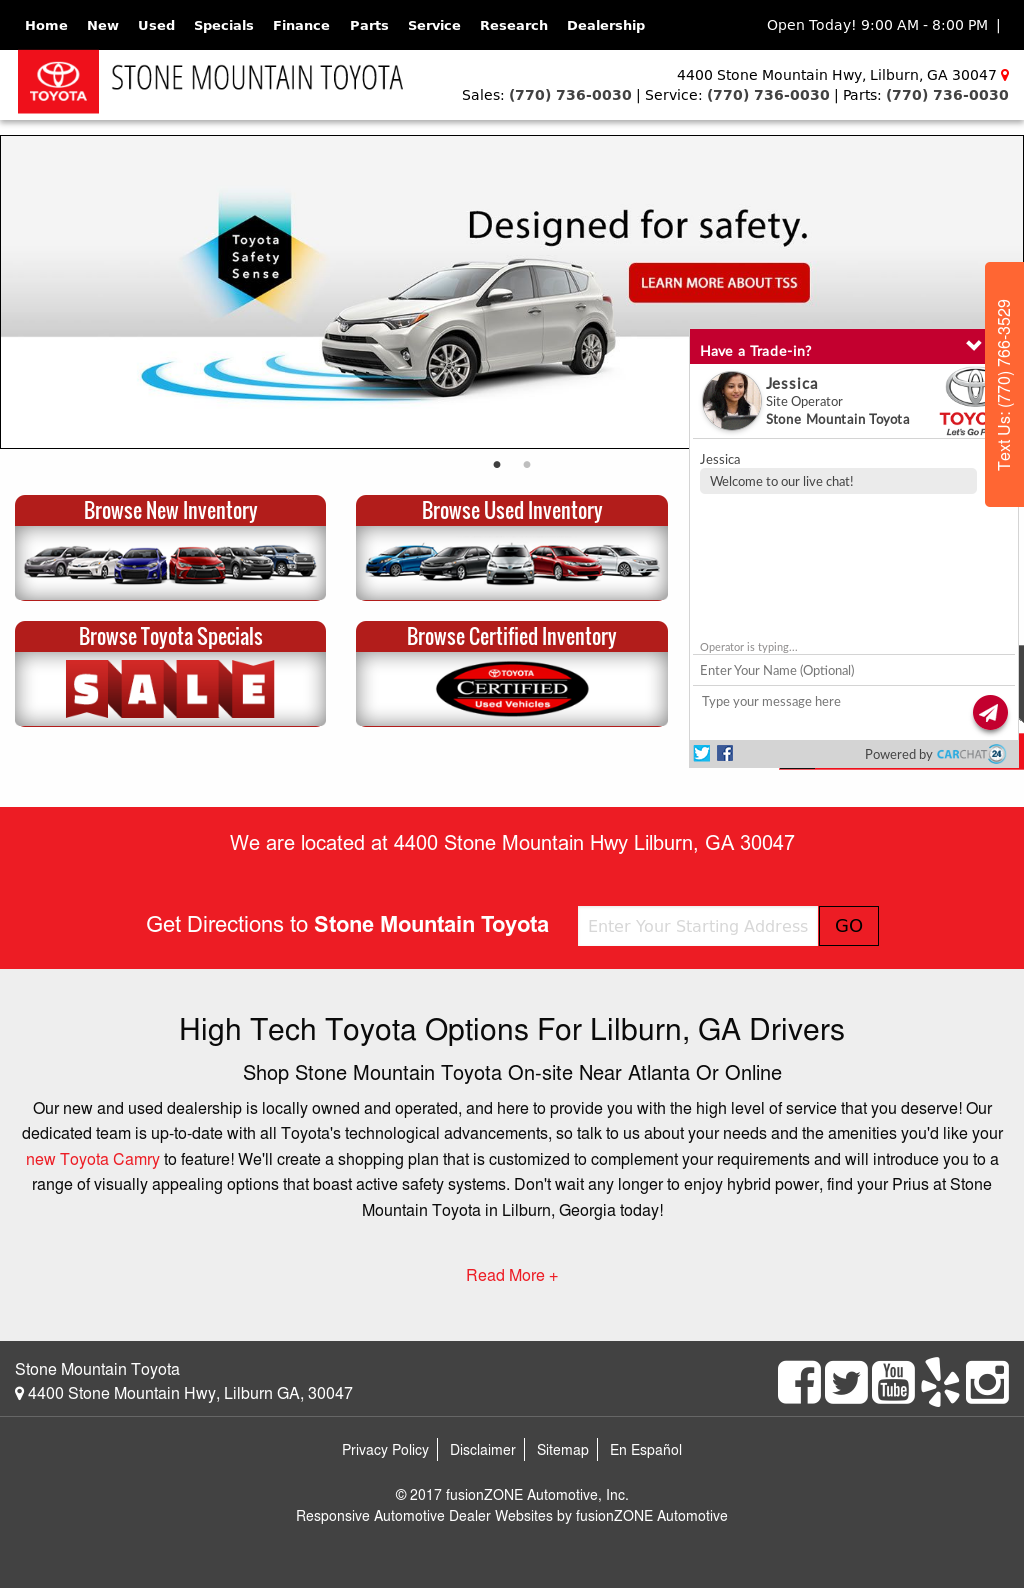 Stone Mountain Toyota Website History